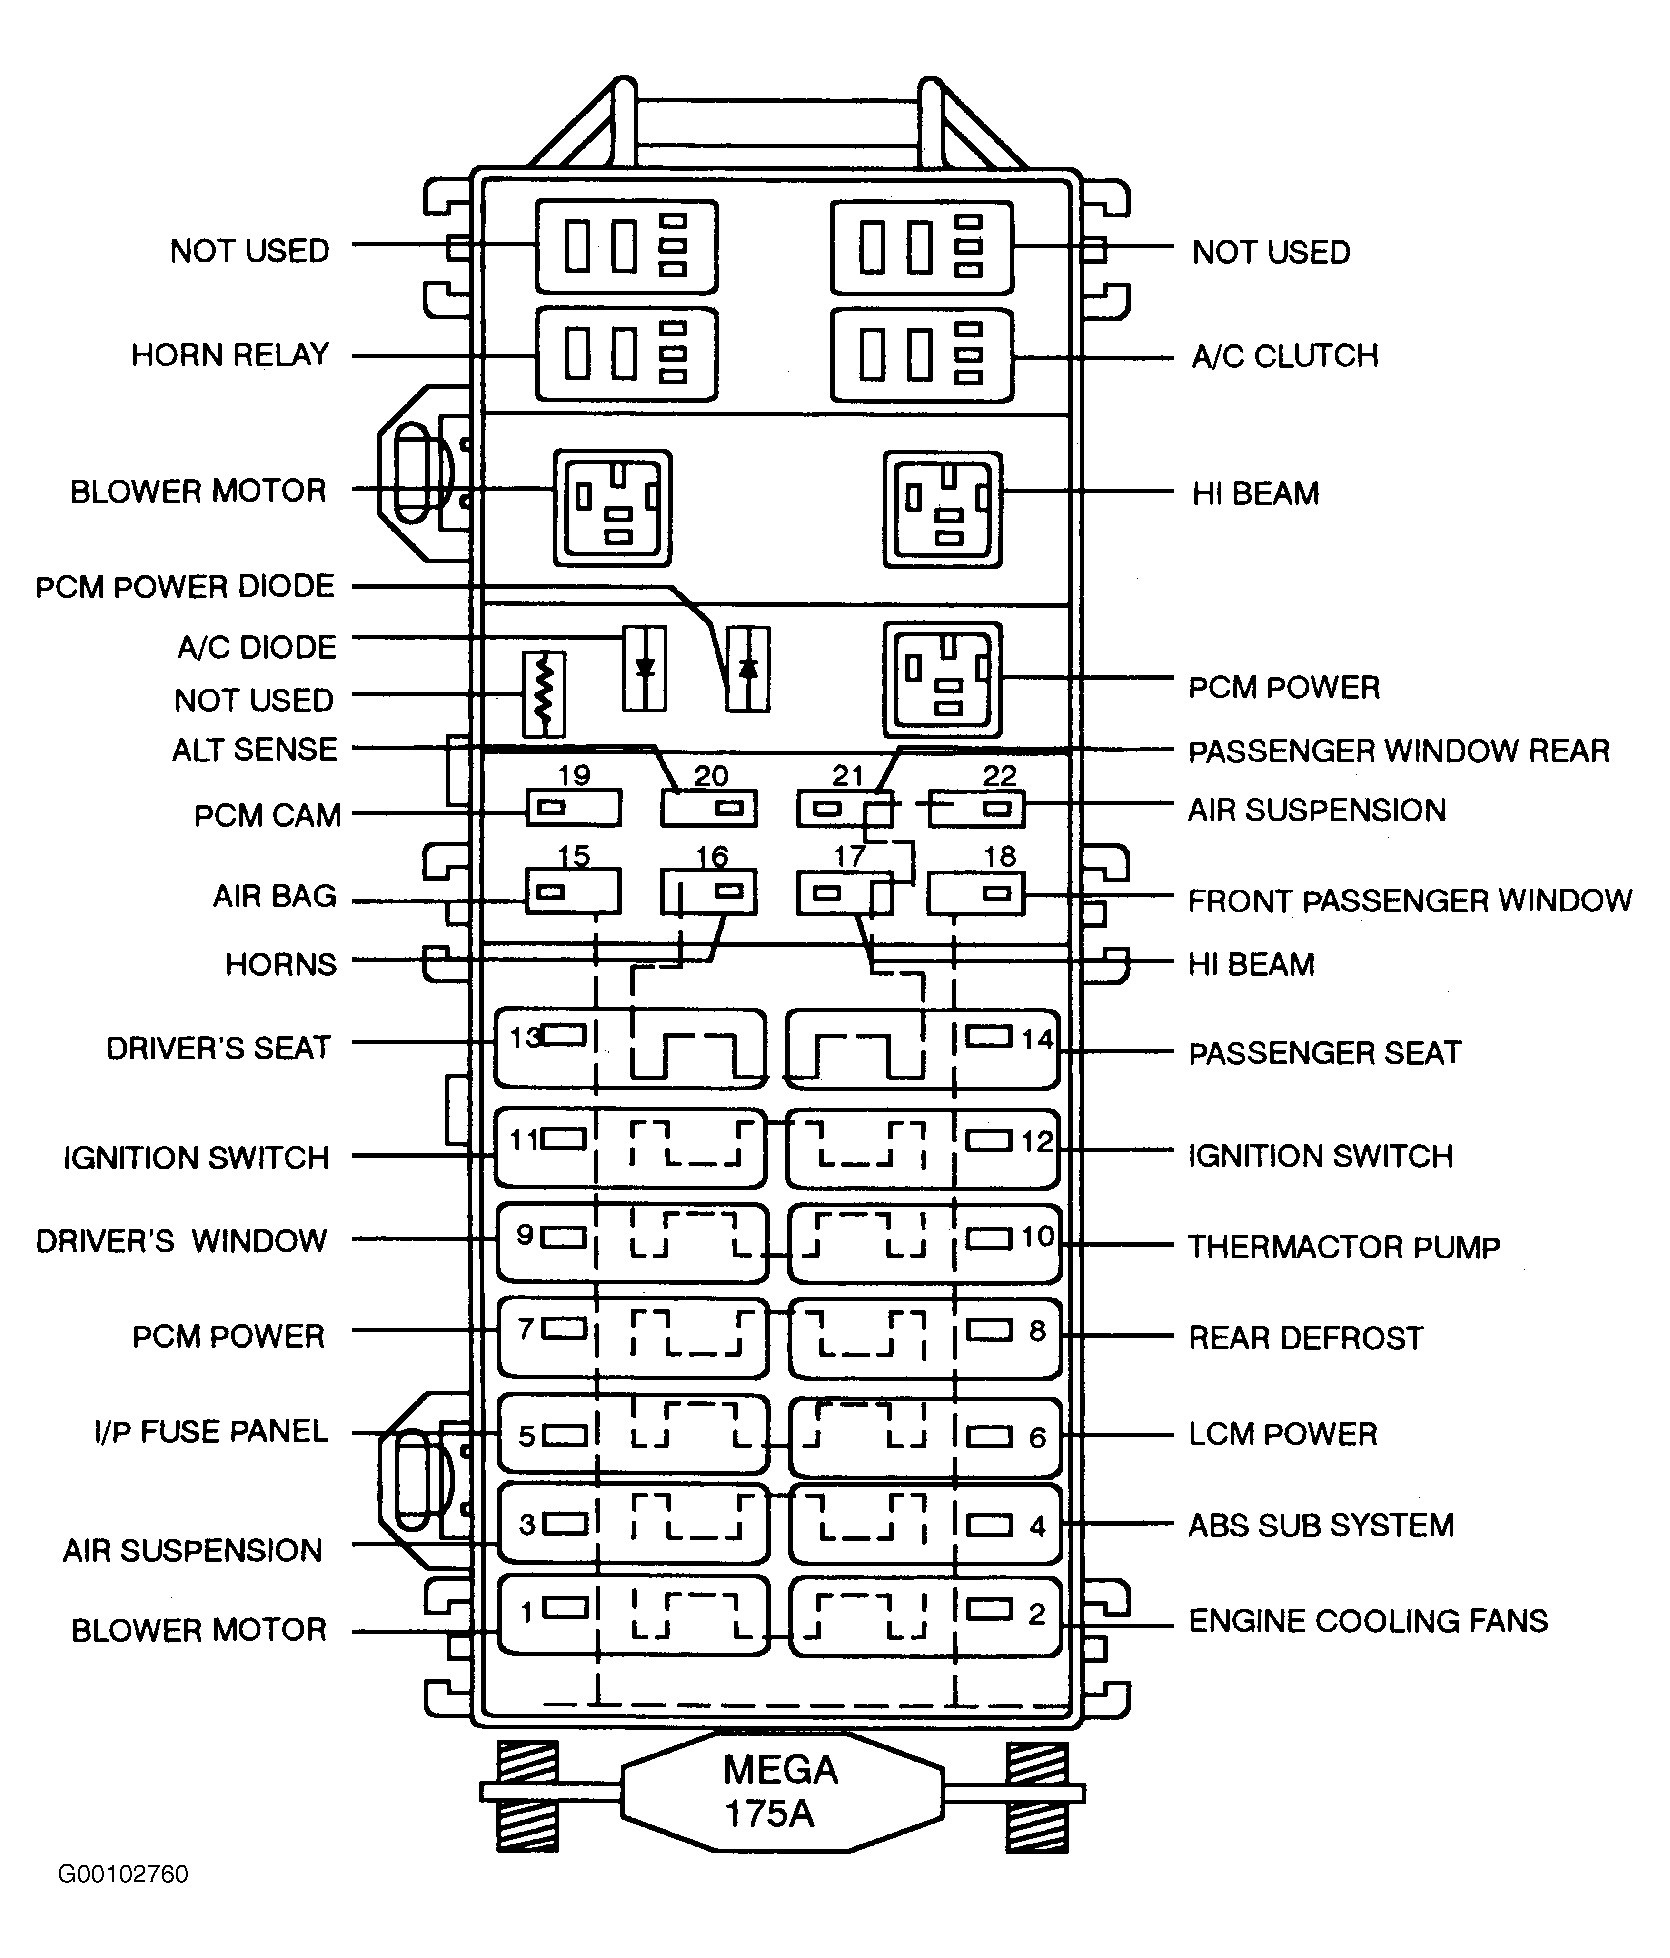 2000 mercury marquis fuse panel diagram